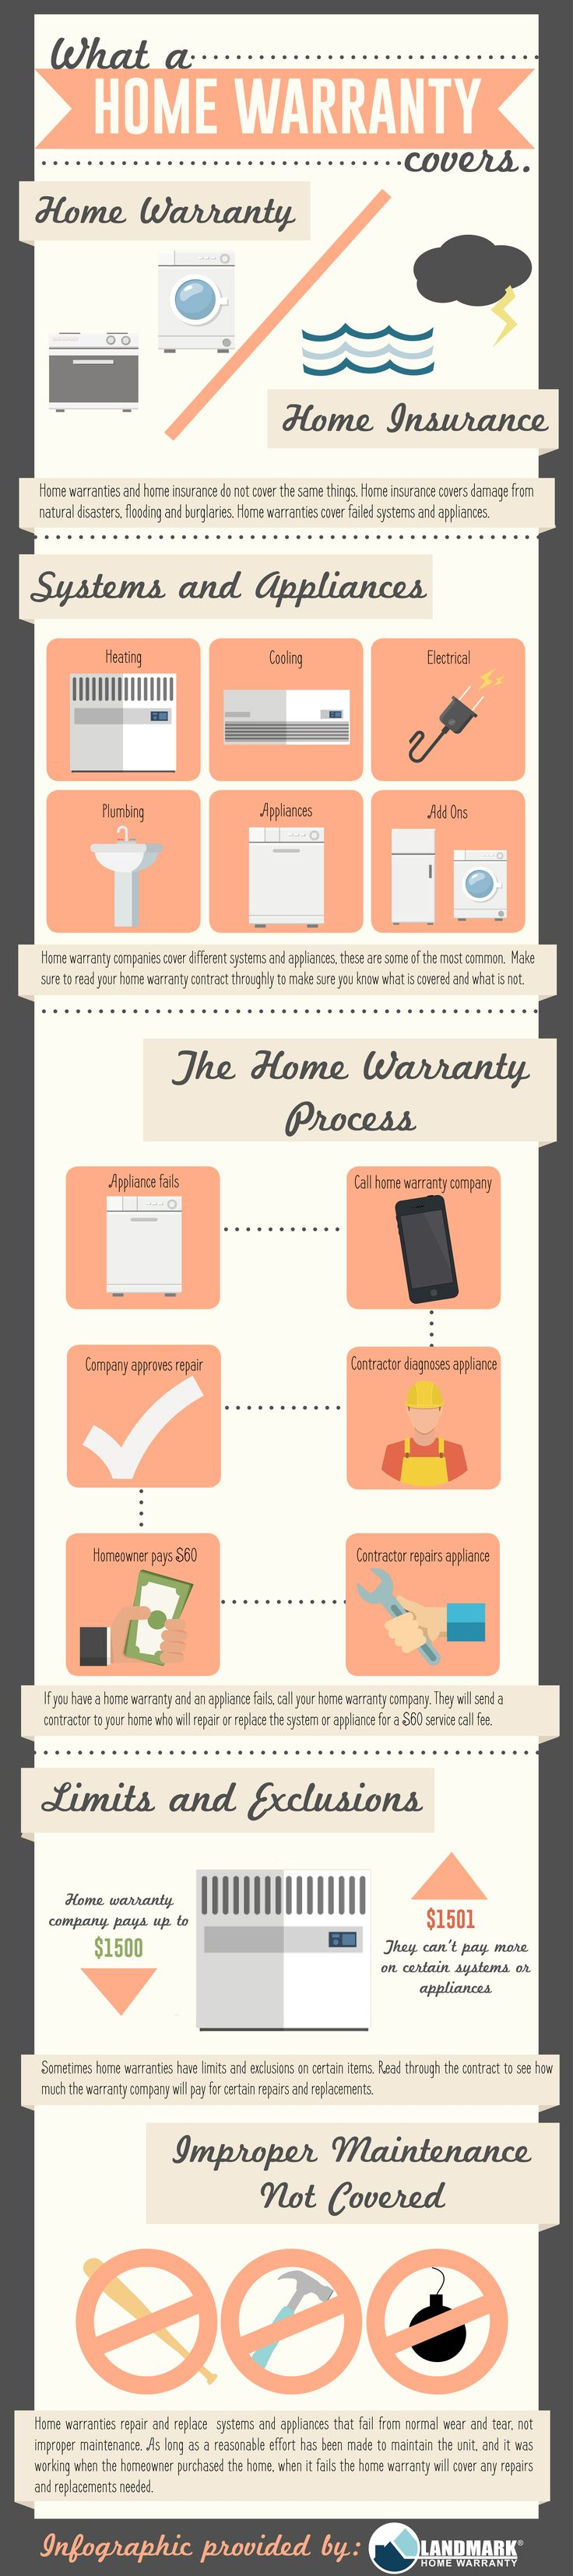 Download this infographic to share it with your clients. Although home warranty companies have different contracts, this covers the basics of a home warranty.